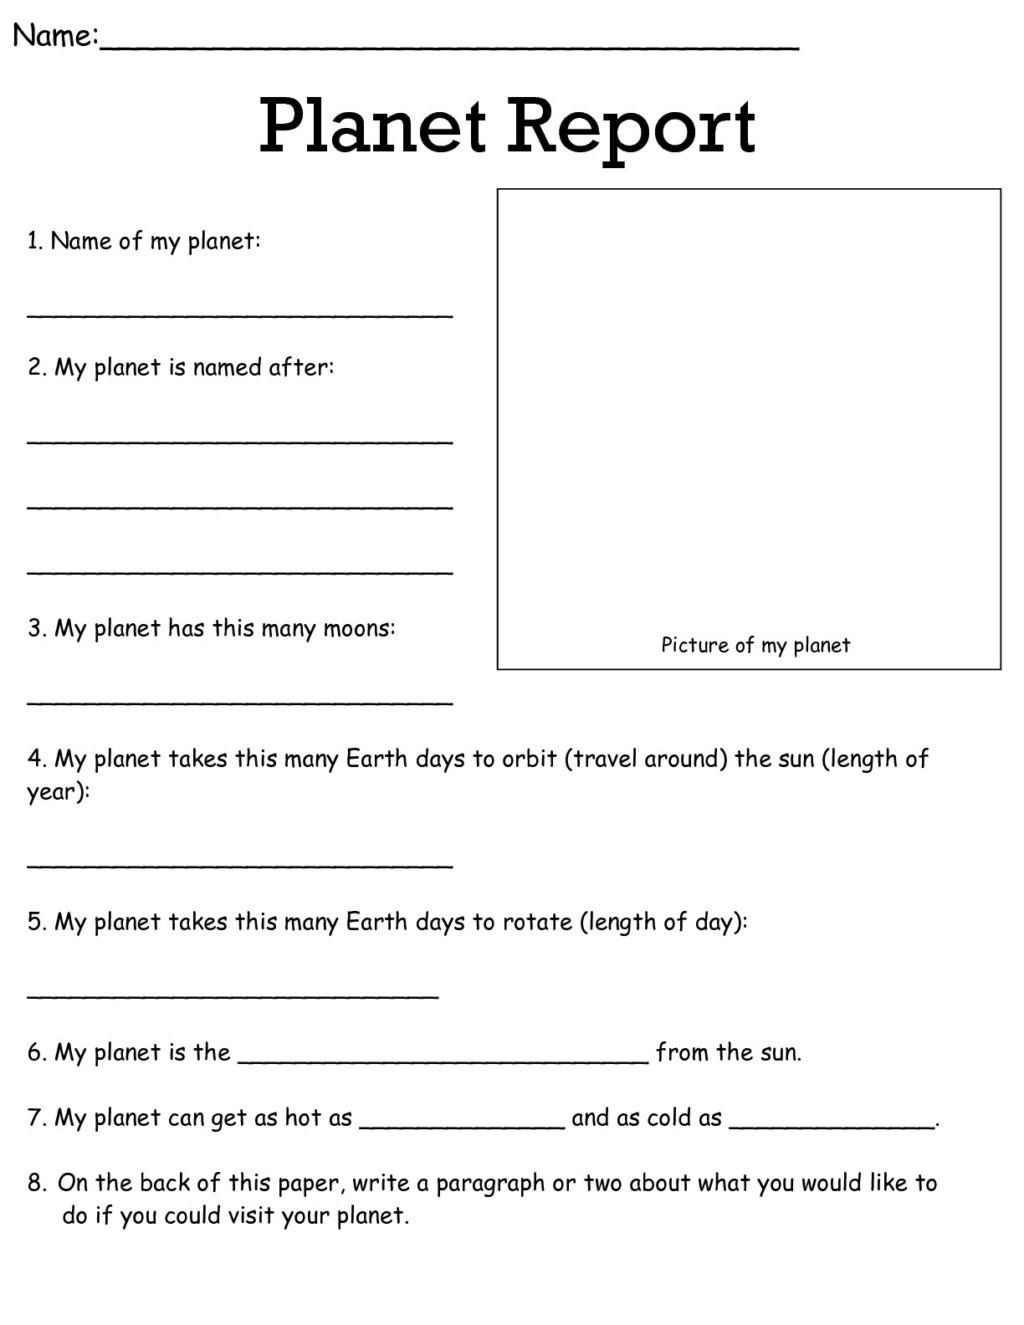 Second Grade Science Worksheets Free Worksheet astonishing Scienceeets for 2nd Grade